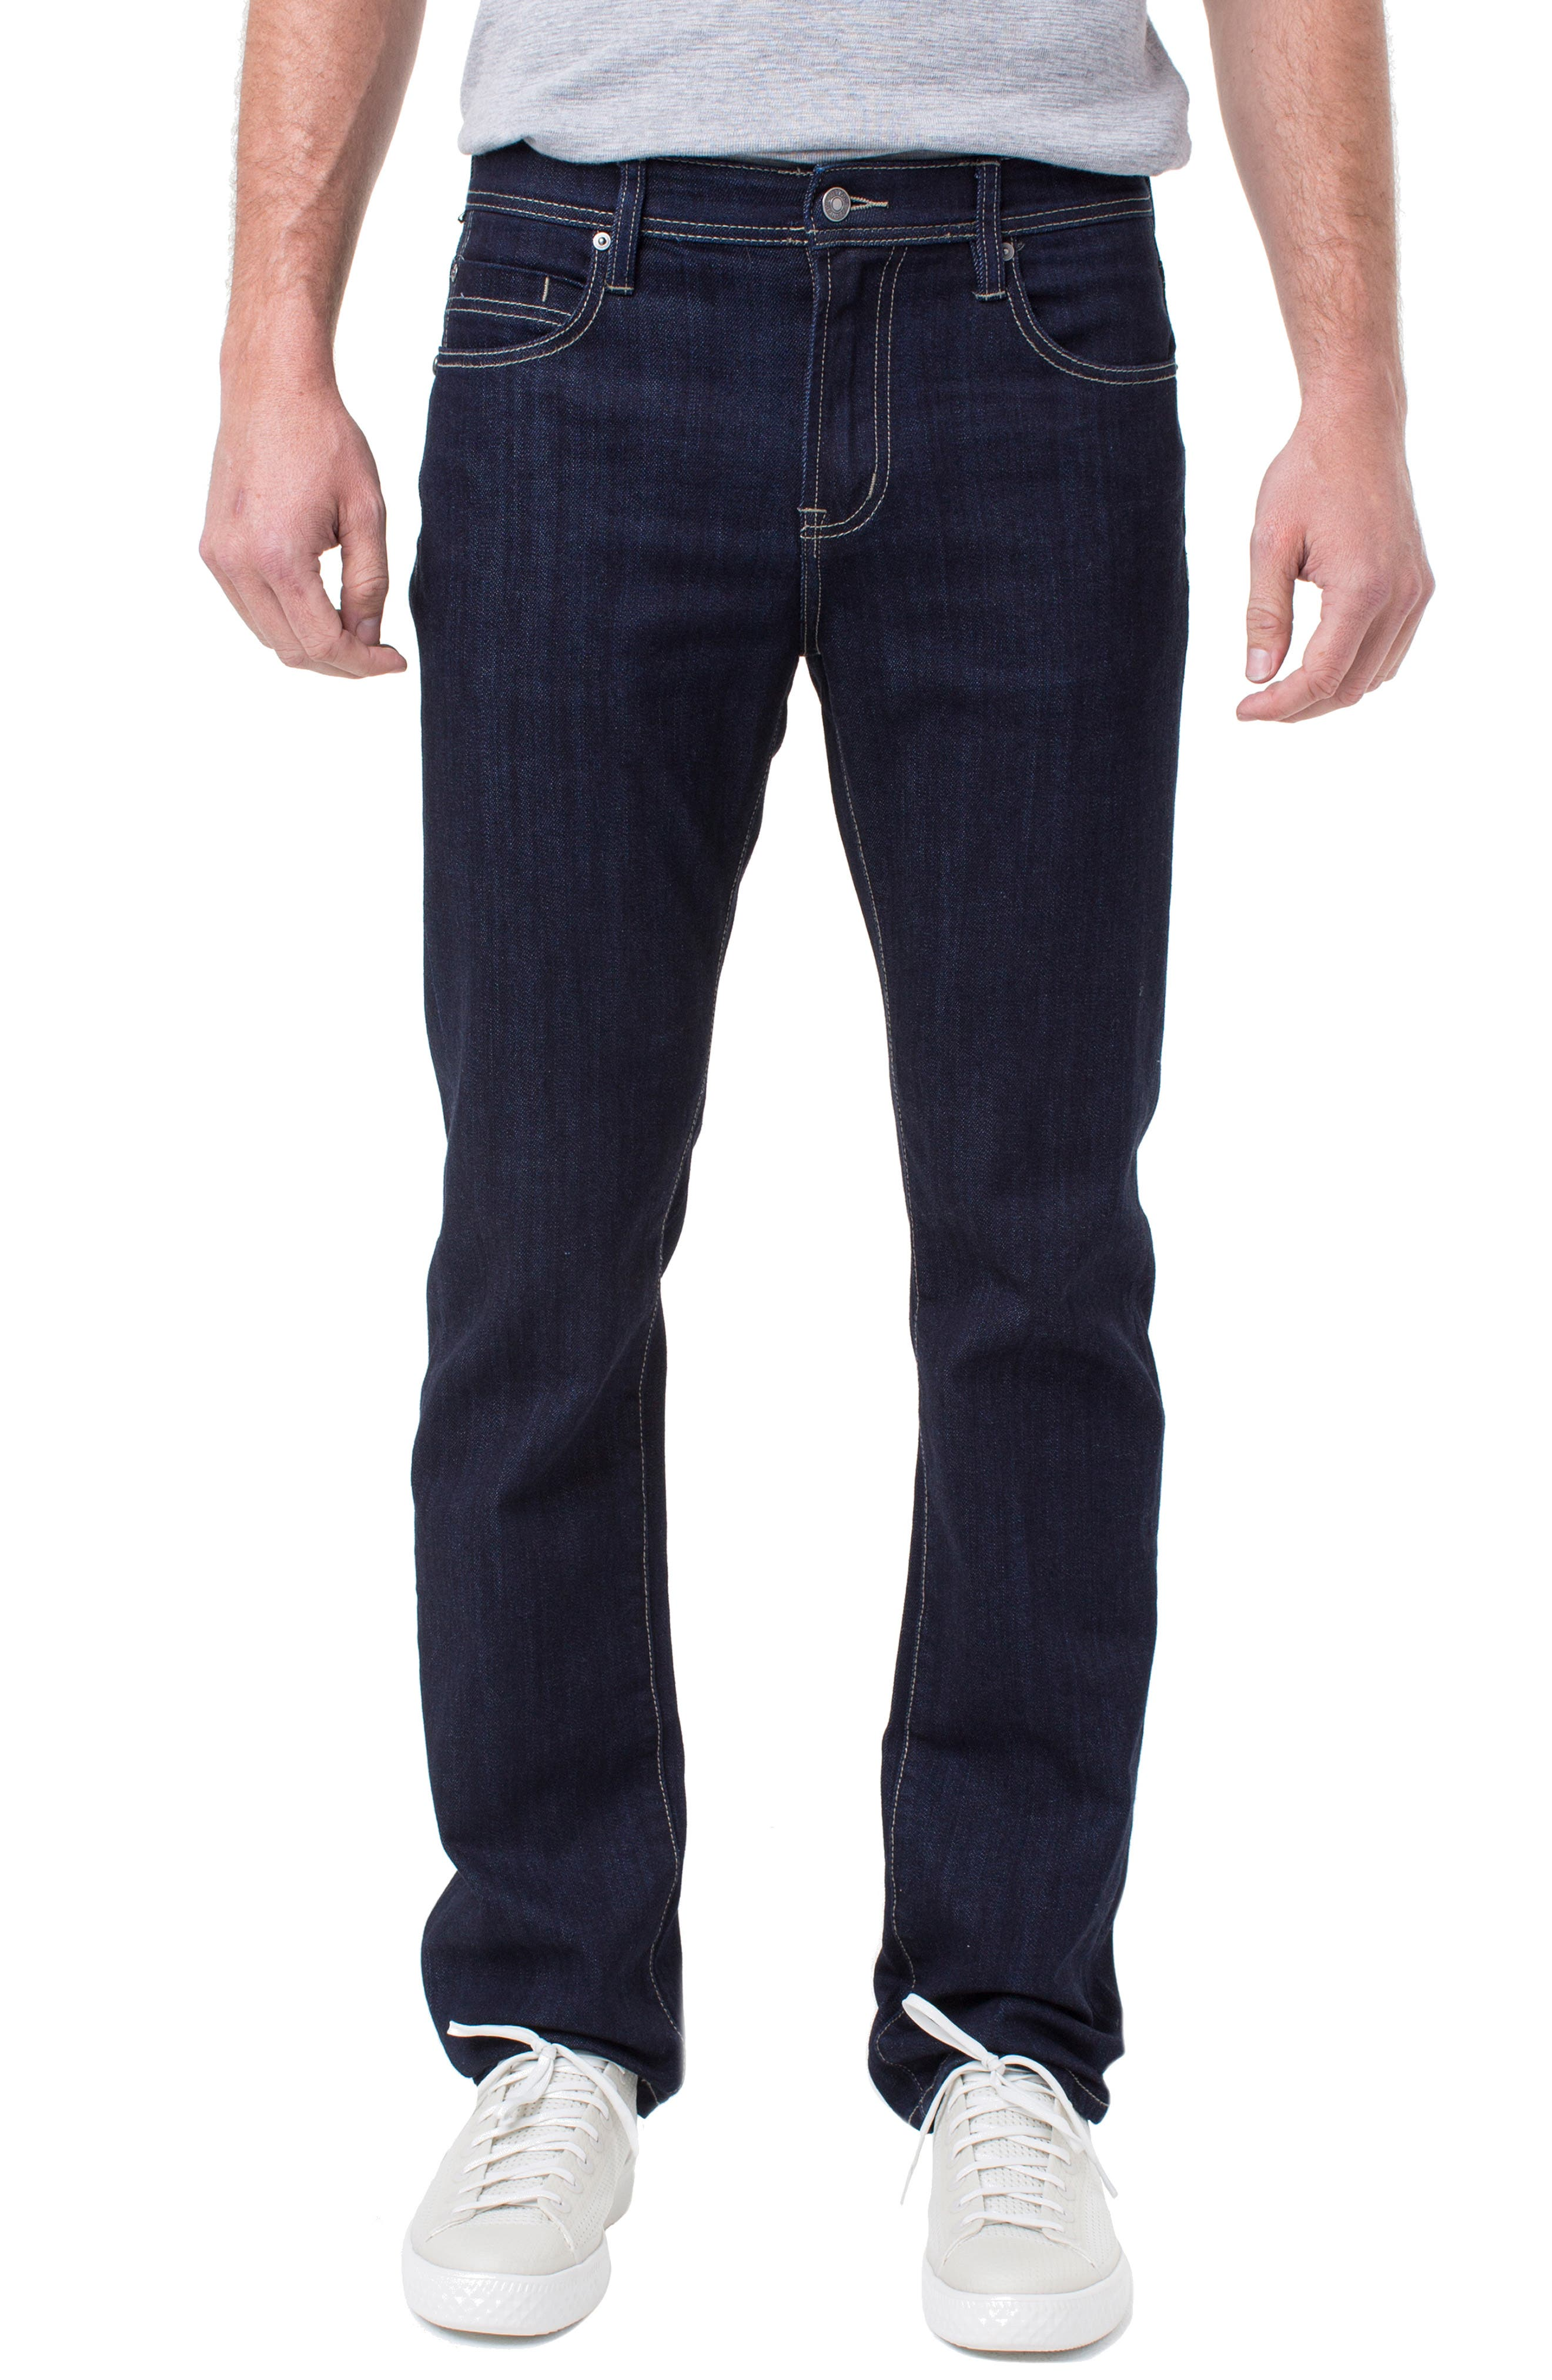 LIVERPOOL, Regent Relaxed Straight Leg Jeans, Main thumbnail 1, color, IND RINSE